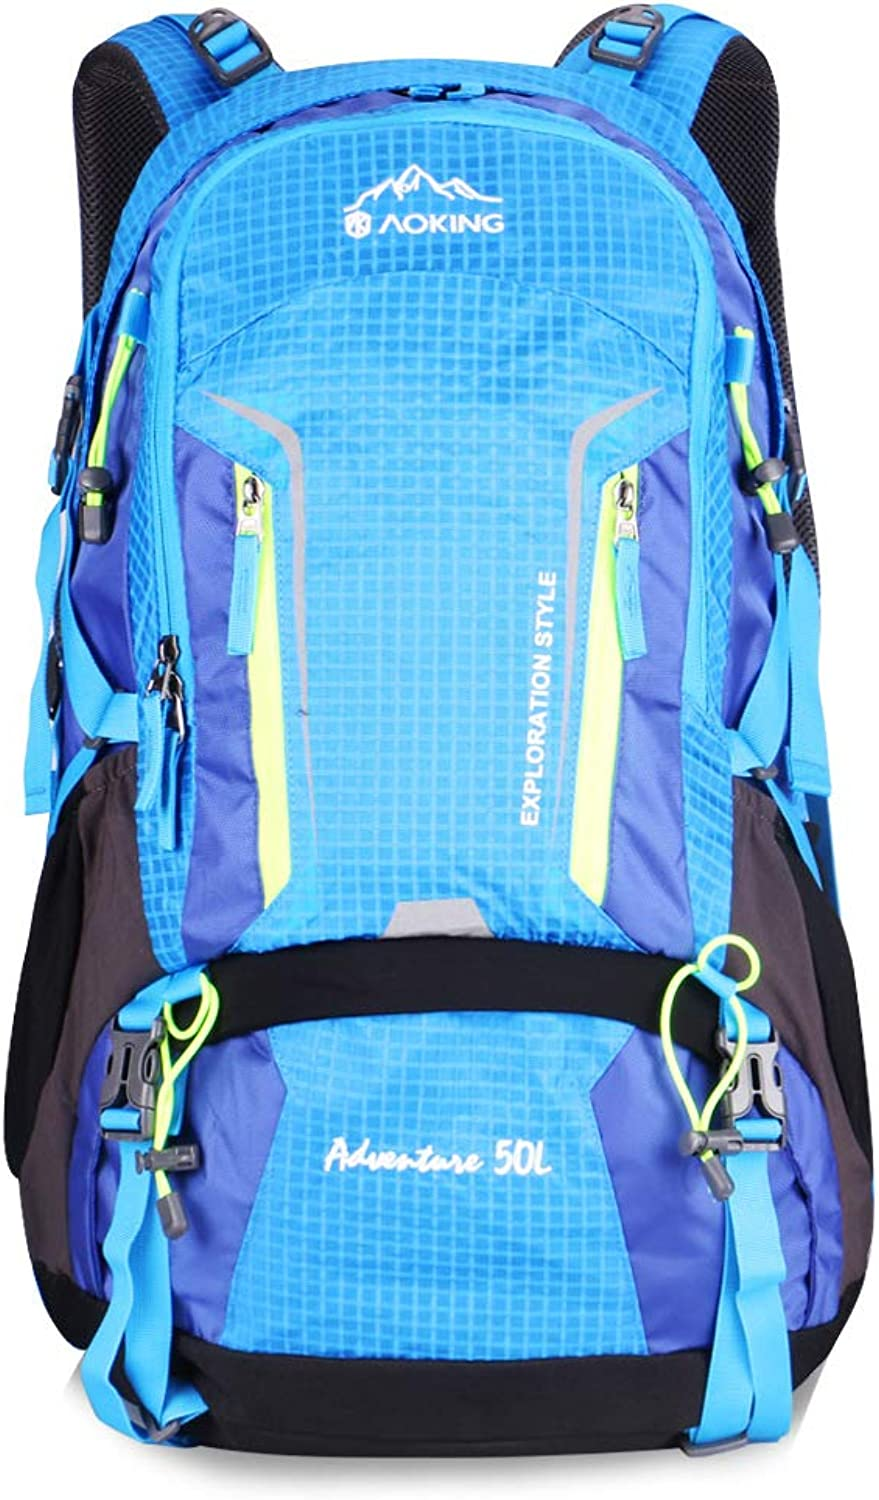 50L Waterproof Lightweight Trekking Rucksack Hiking Backpack for Outdoor Sport Travel Cycling Climbing Mountaineer Climbing with Rain Cover